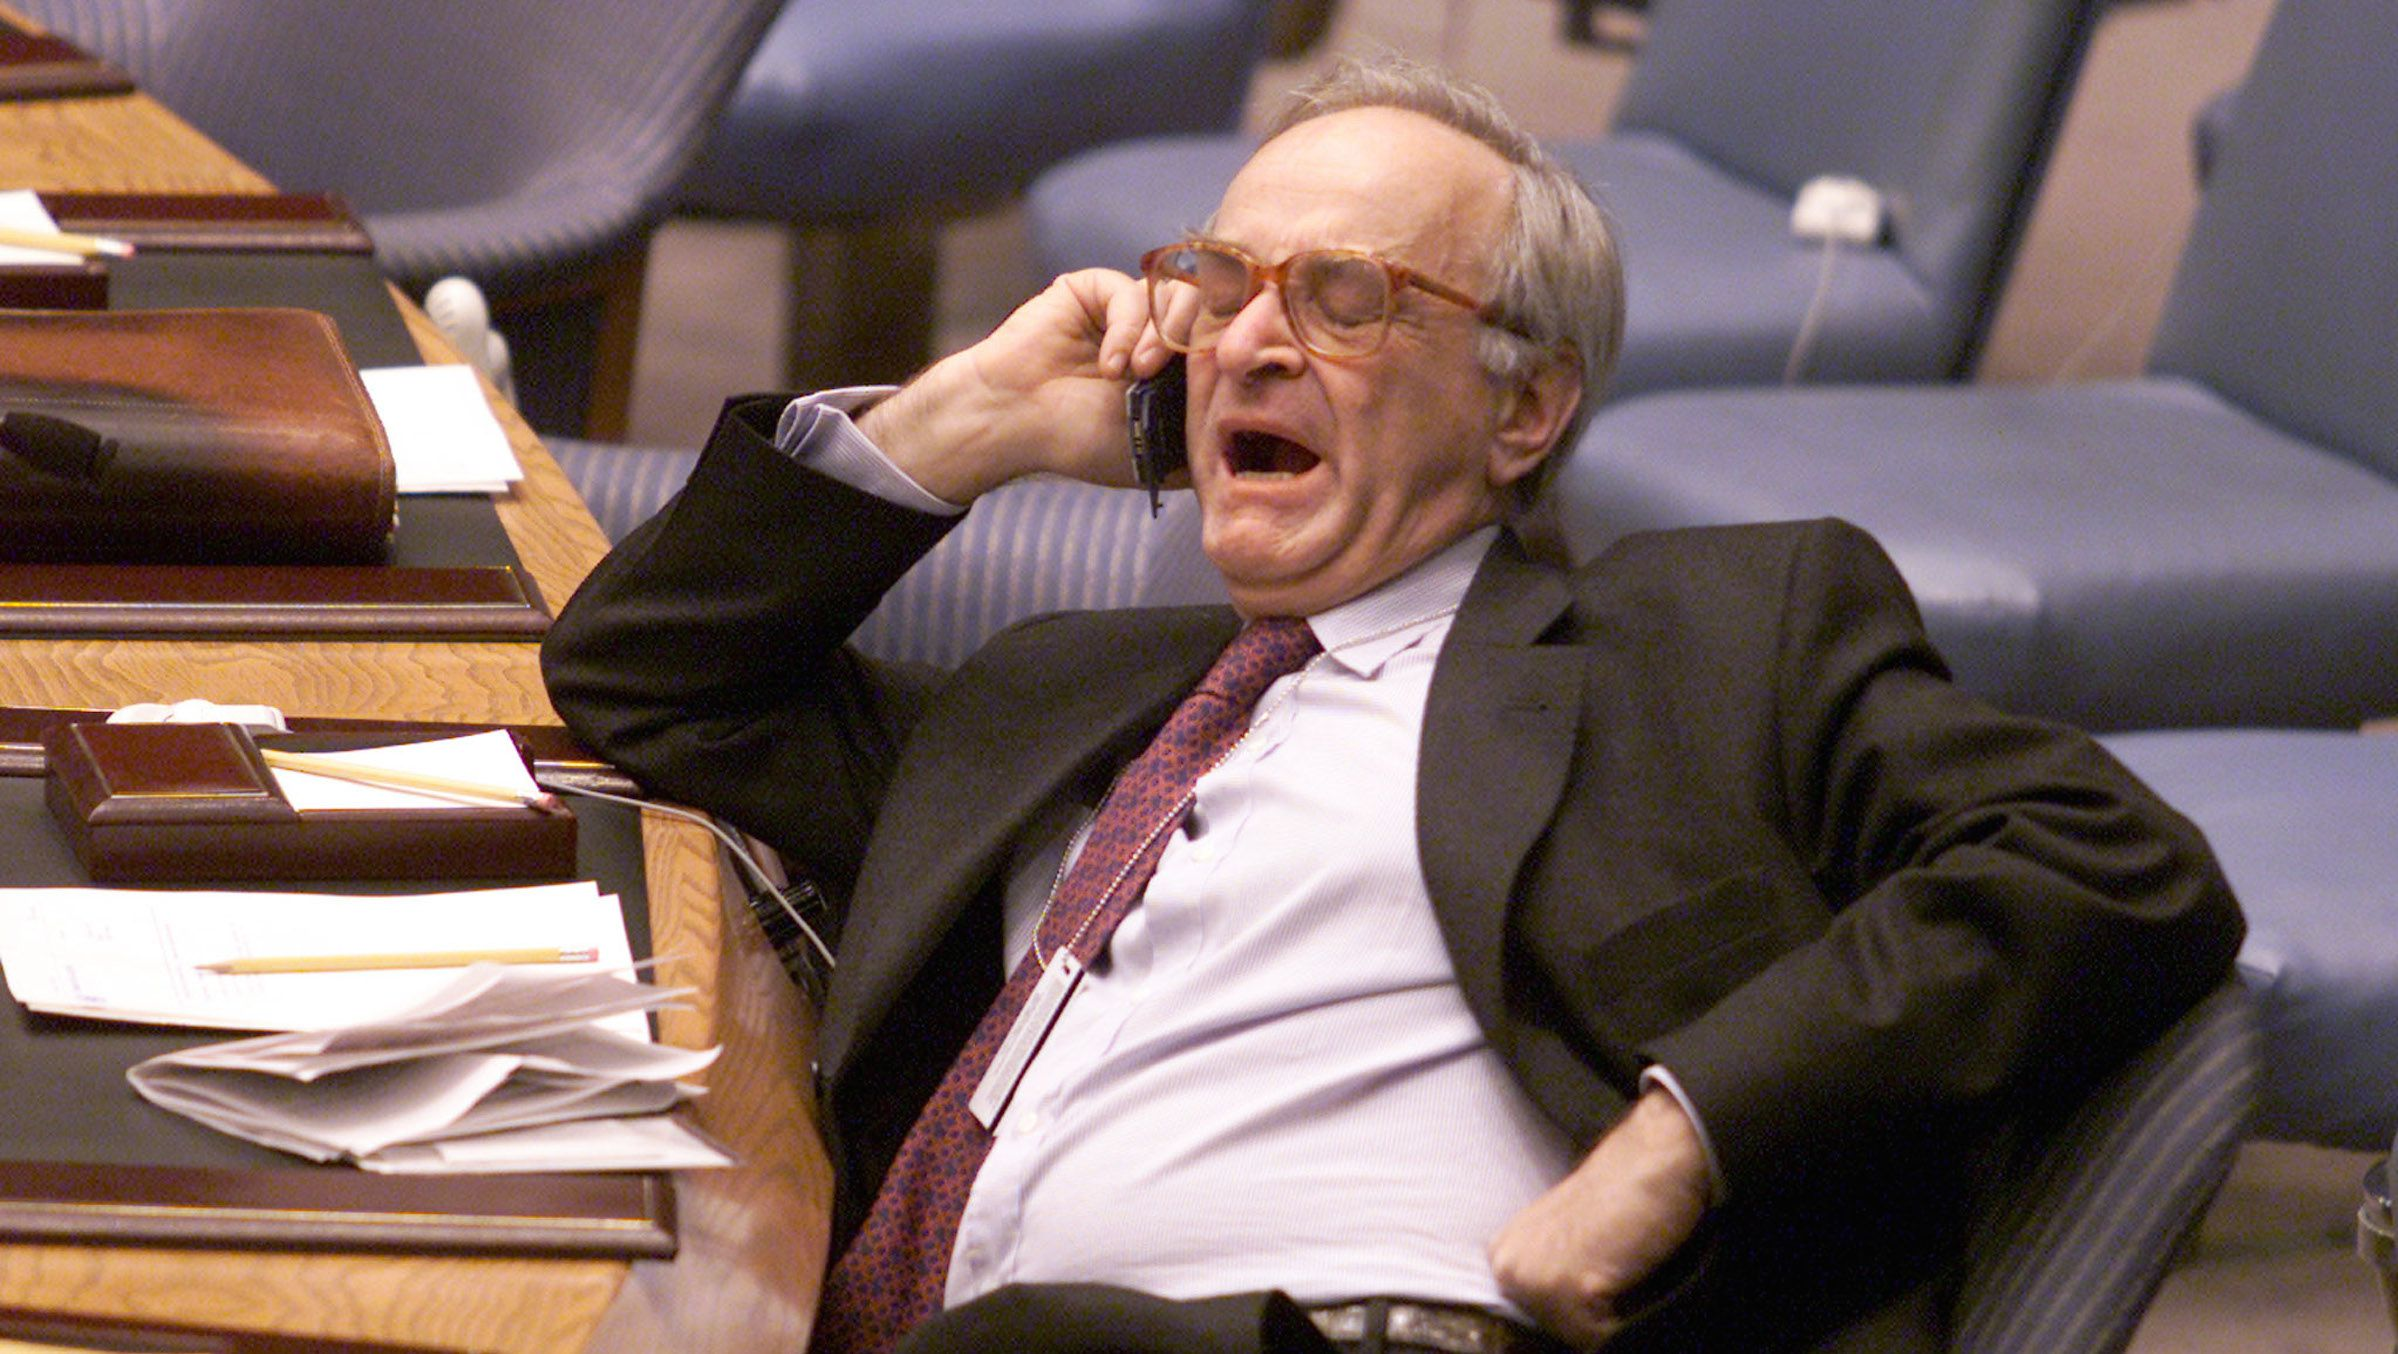 FRENCH AMBASSADOR TO THE UNITED NATIONS JEAN-MARC DE LA SABLIERE YAWNS ON PHONE BEFORE SECURITY COUNCIL MEETING. - RTRETZM